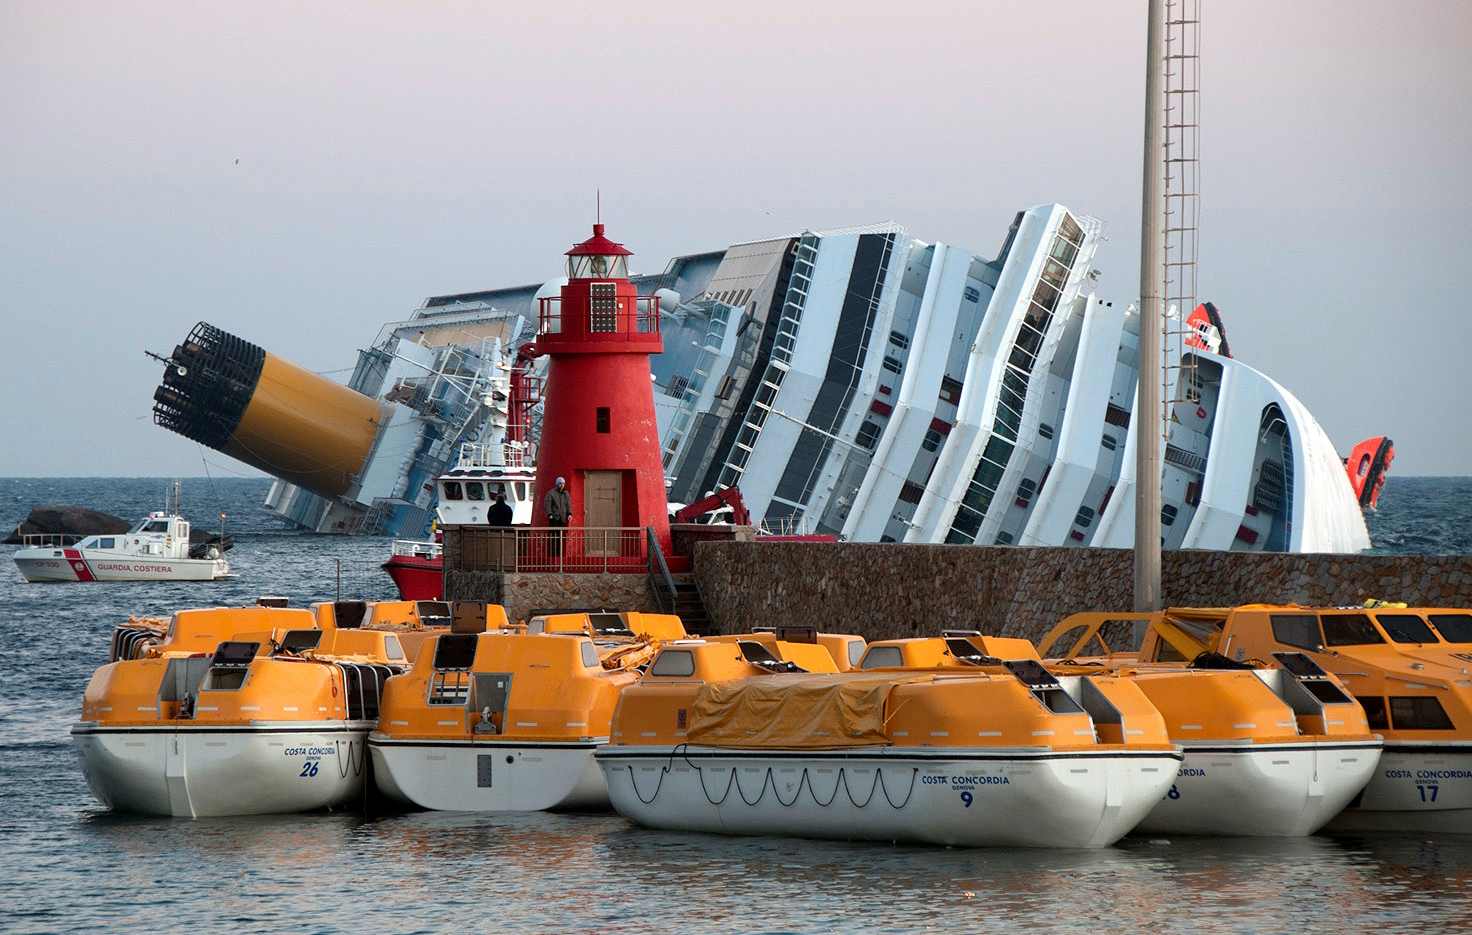 cruise ship diagram sharepoint 2010 site power plant of costa concordia great installation wiring